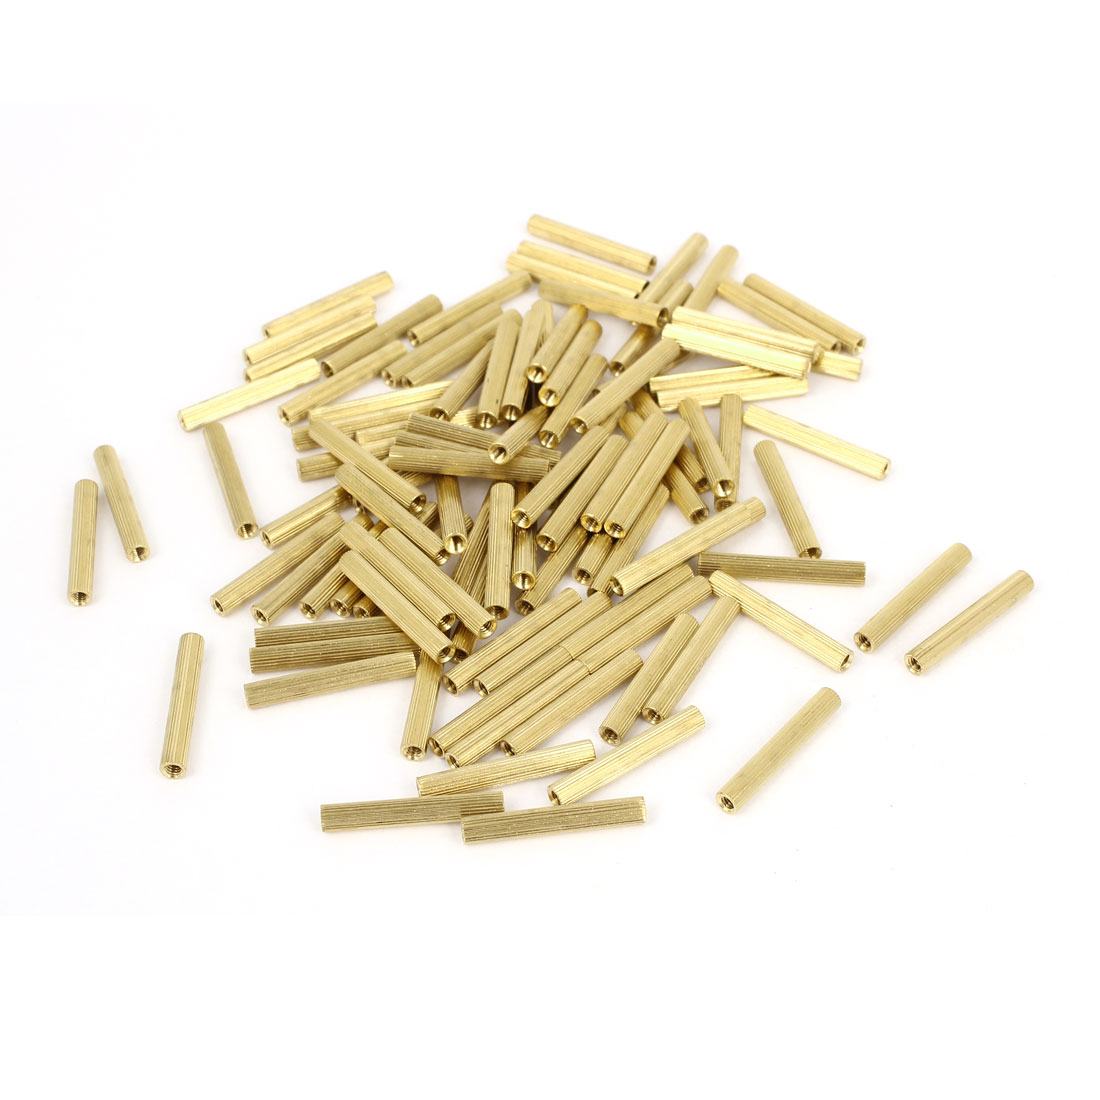 100 Pcs Female Threaded Pillars Brass Standoff Spacer Gold Tone M2x21mm